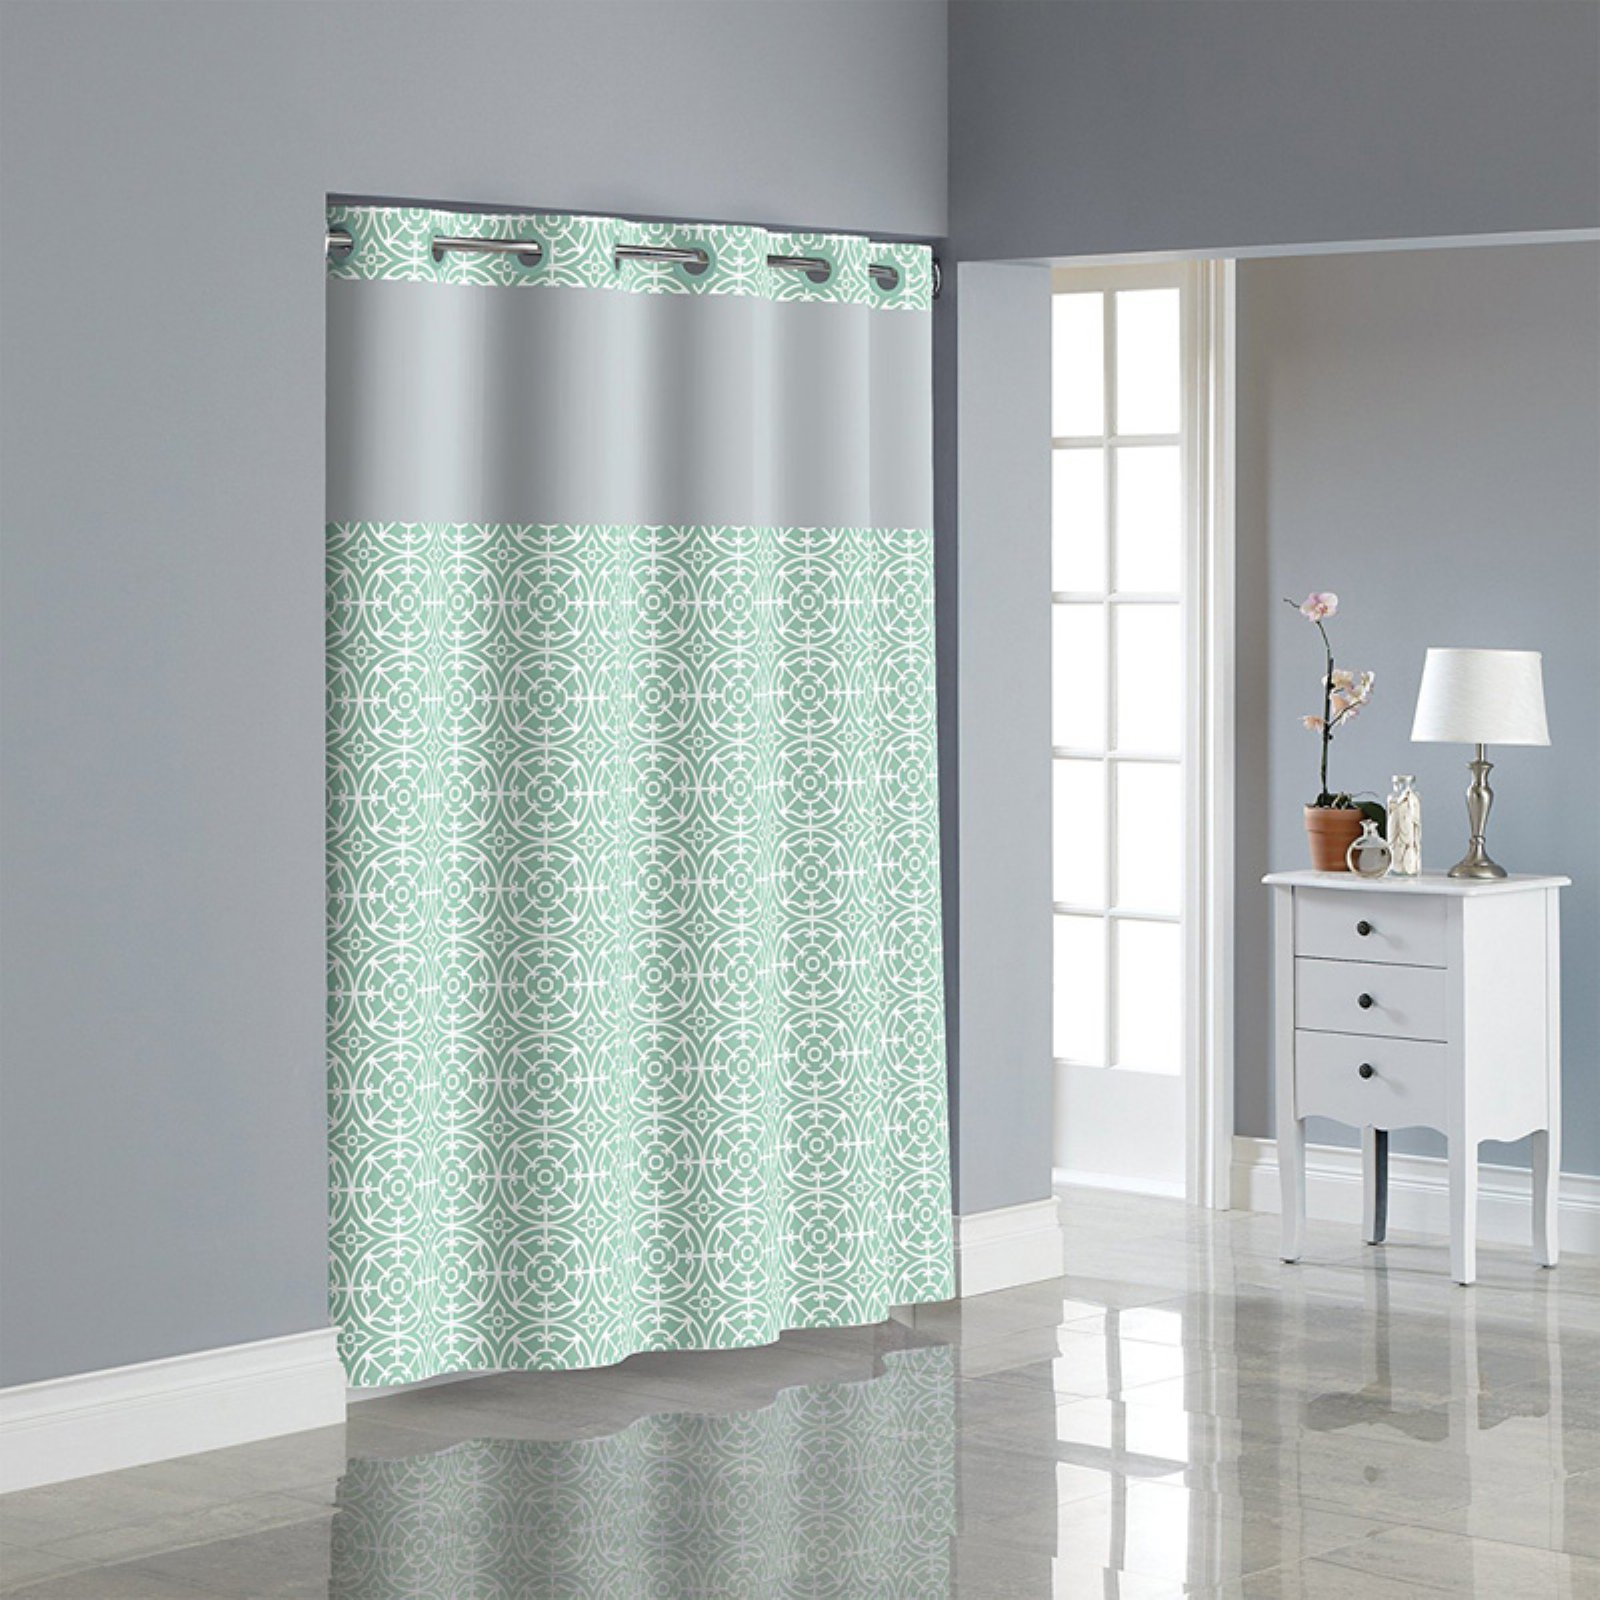 Kohls Com Shower Curtains Kohls Shower Curtains Hookless